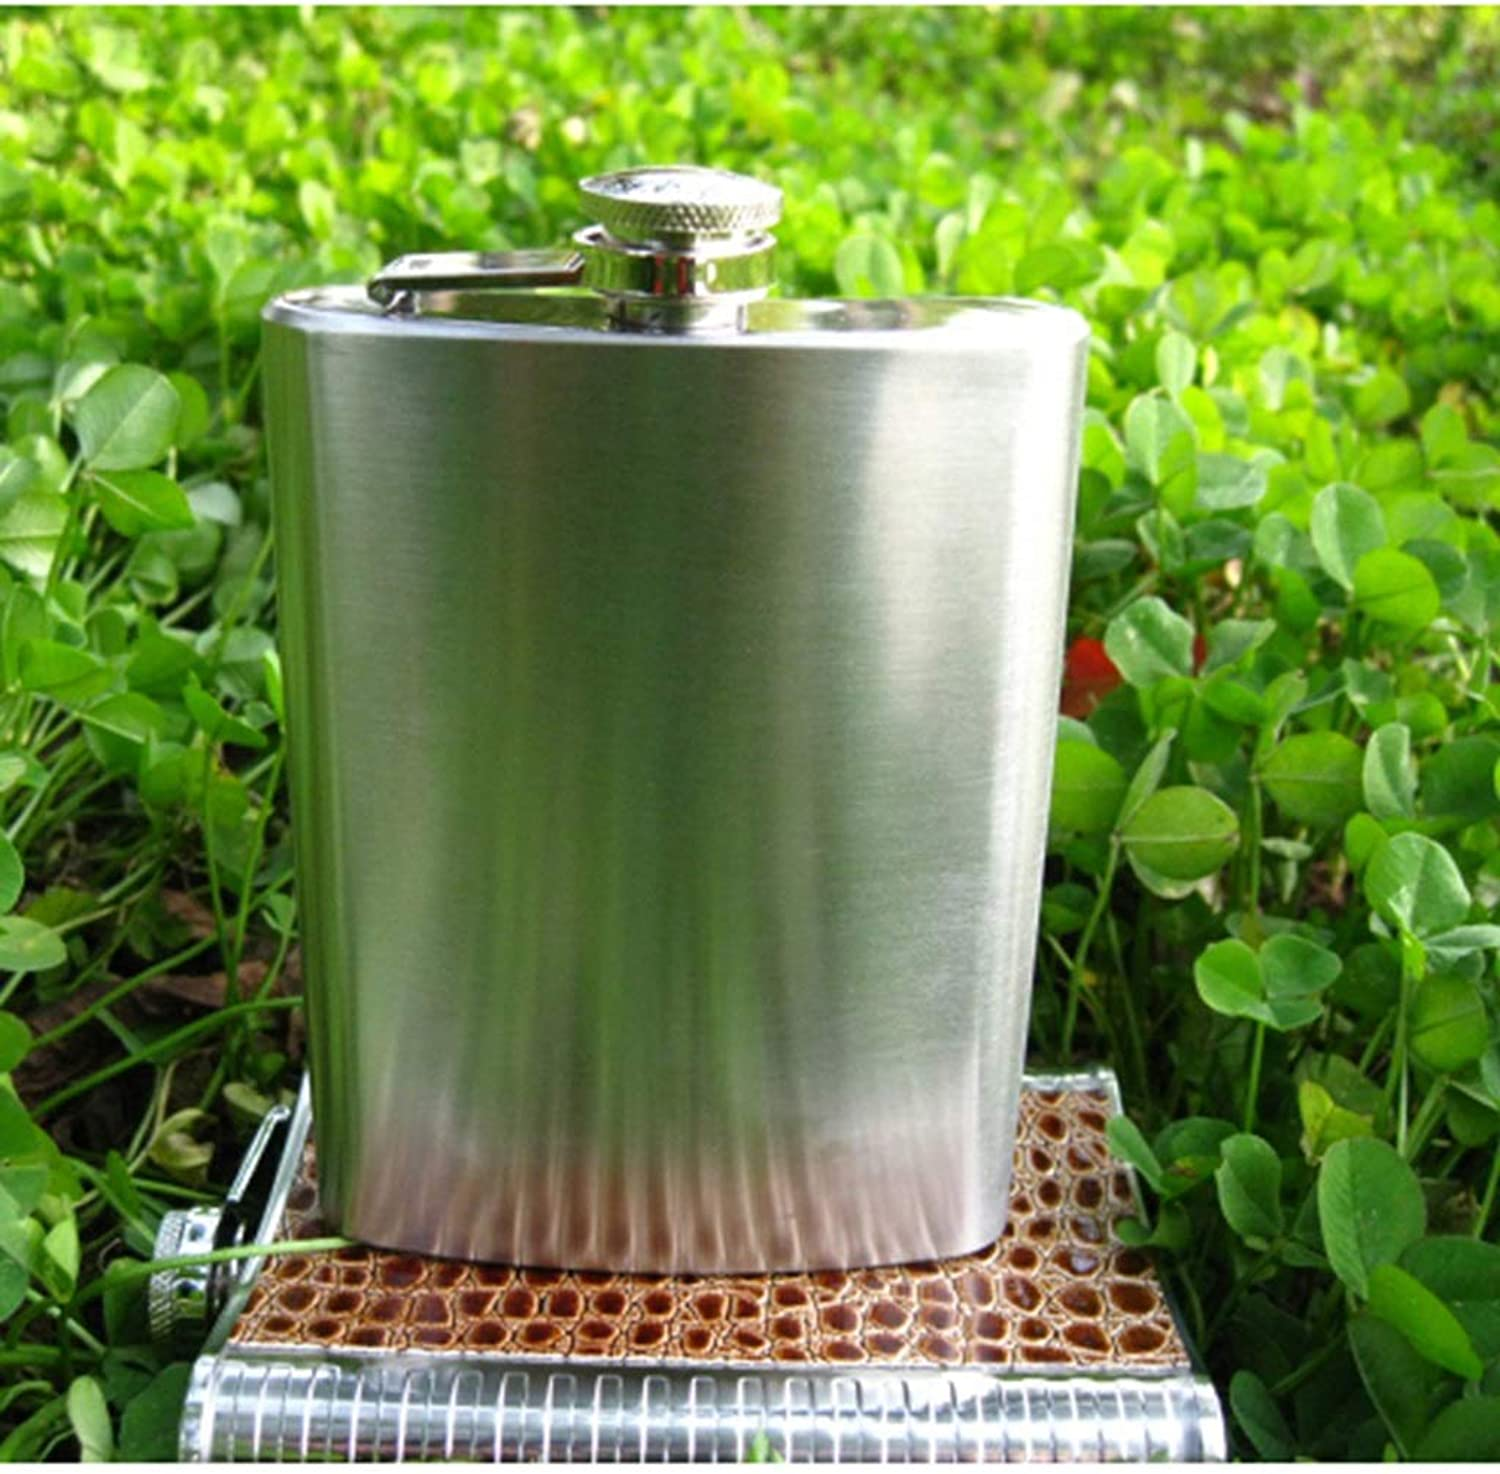 Hydration Pocket Flask Outdoor Portable 8 oz Flask Portable Mini 304 Stainless Steel Wine Set Camping & Hiking (color   Silver, Size   16  9.5  2.5cm)